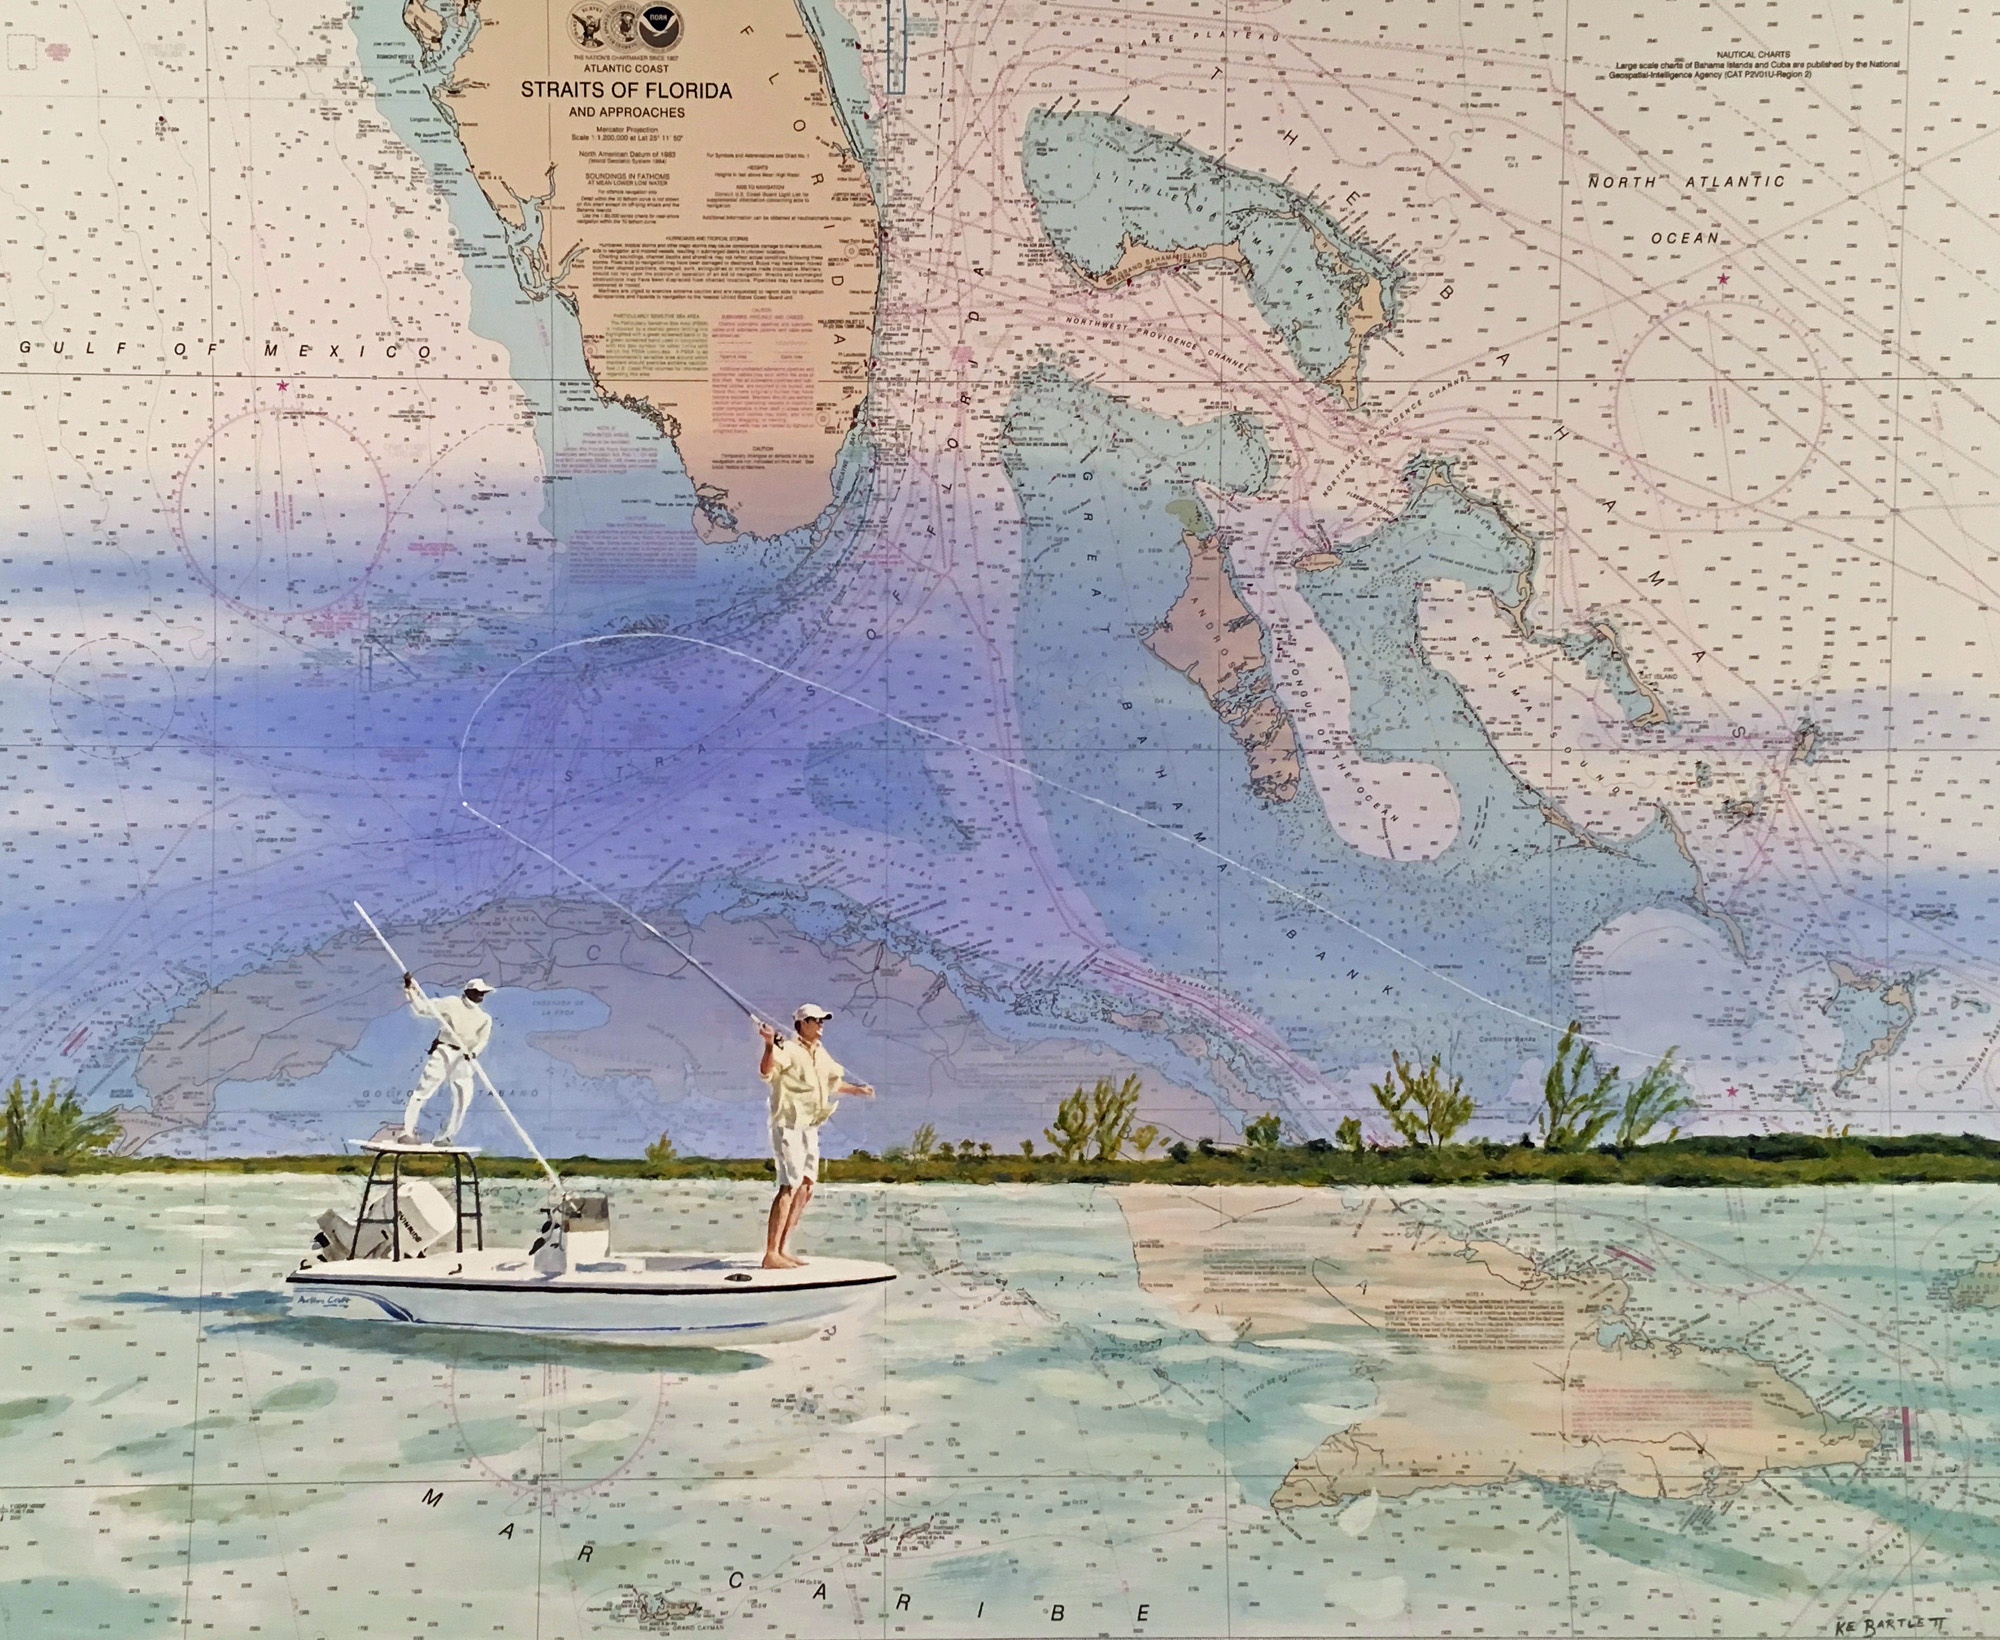 Kyle Bartlett -  Bonefishing, Straits of Florida   Acrylic, 36 x 45 inches